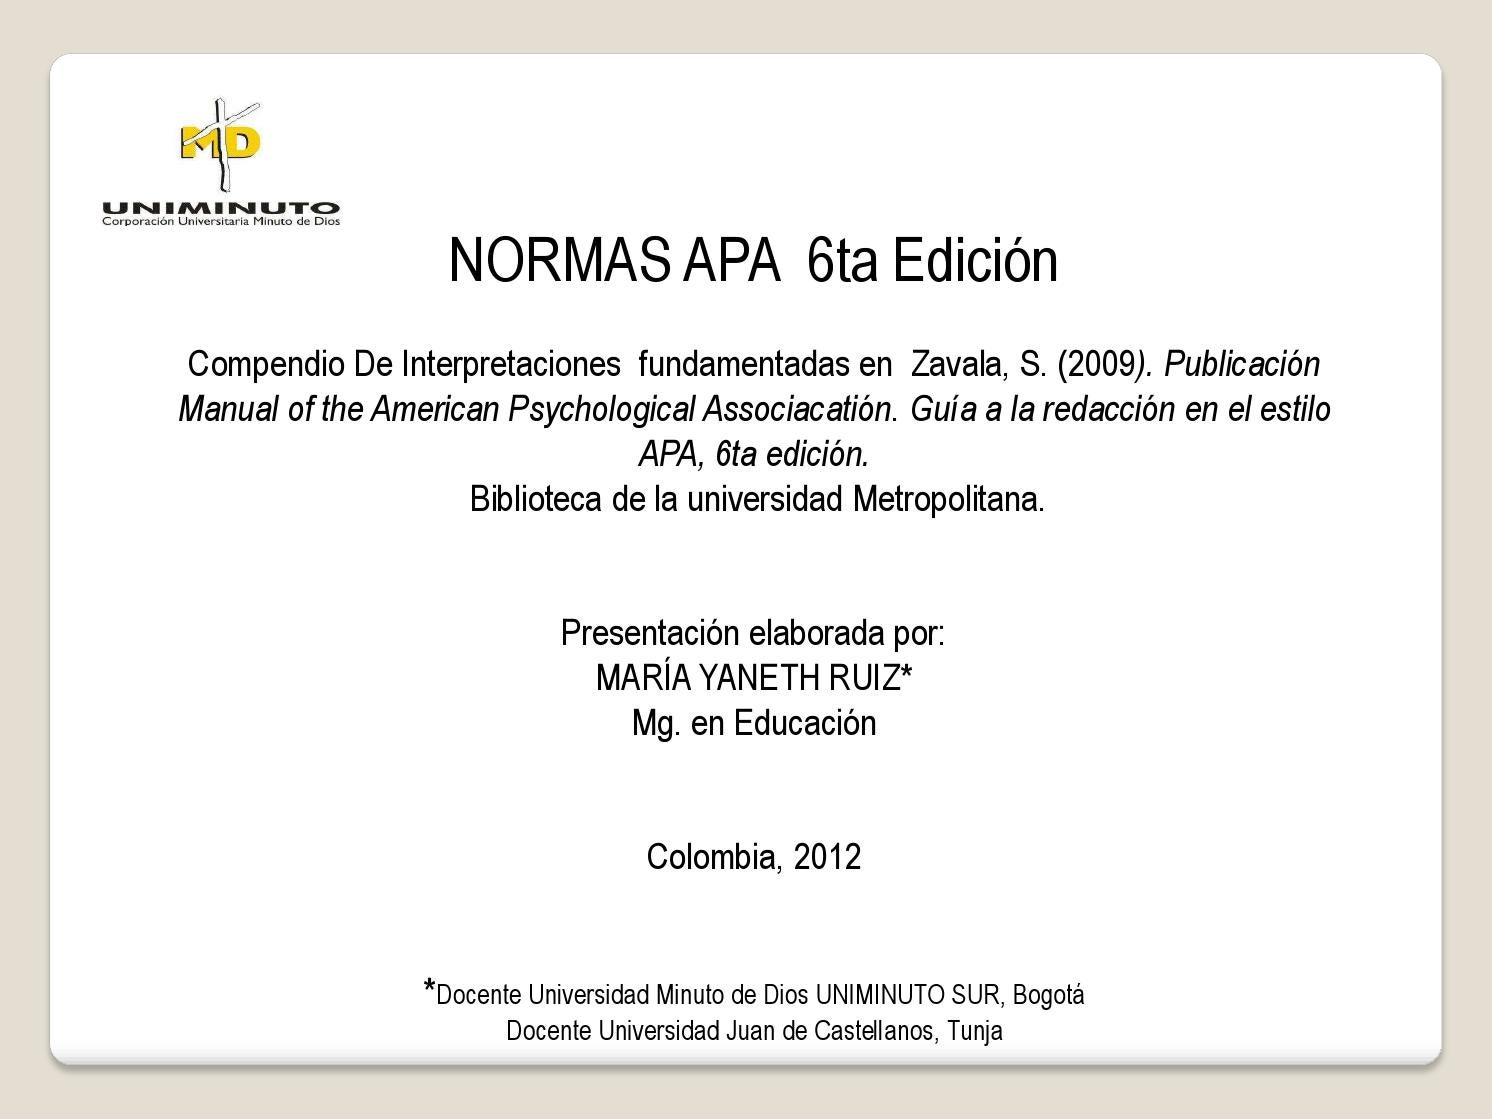 Normas Apa 6ta Edici On Uniminuto Libre By Dennis Colcha Issuu